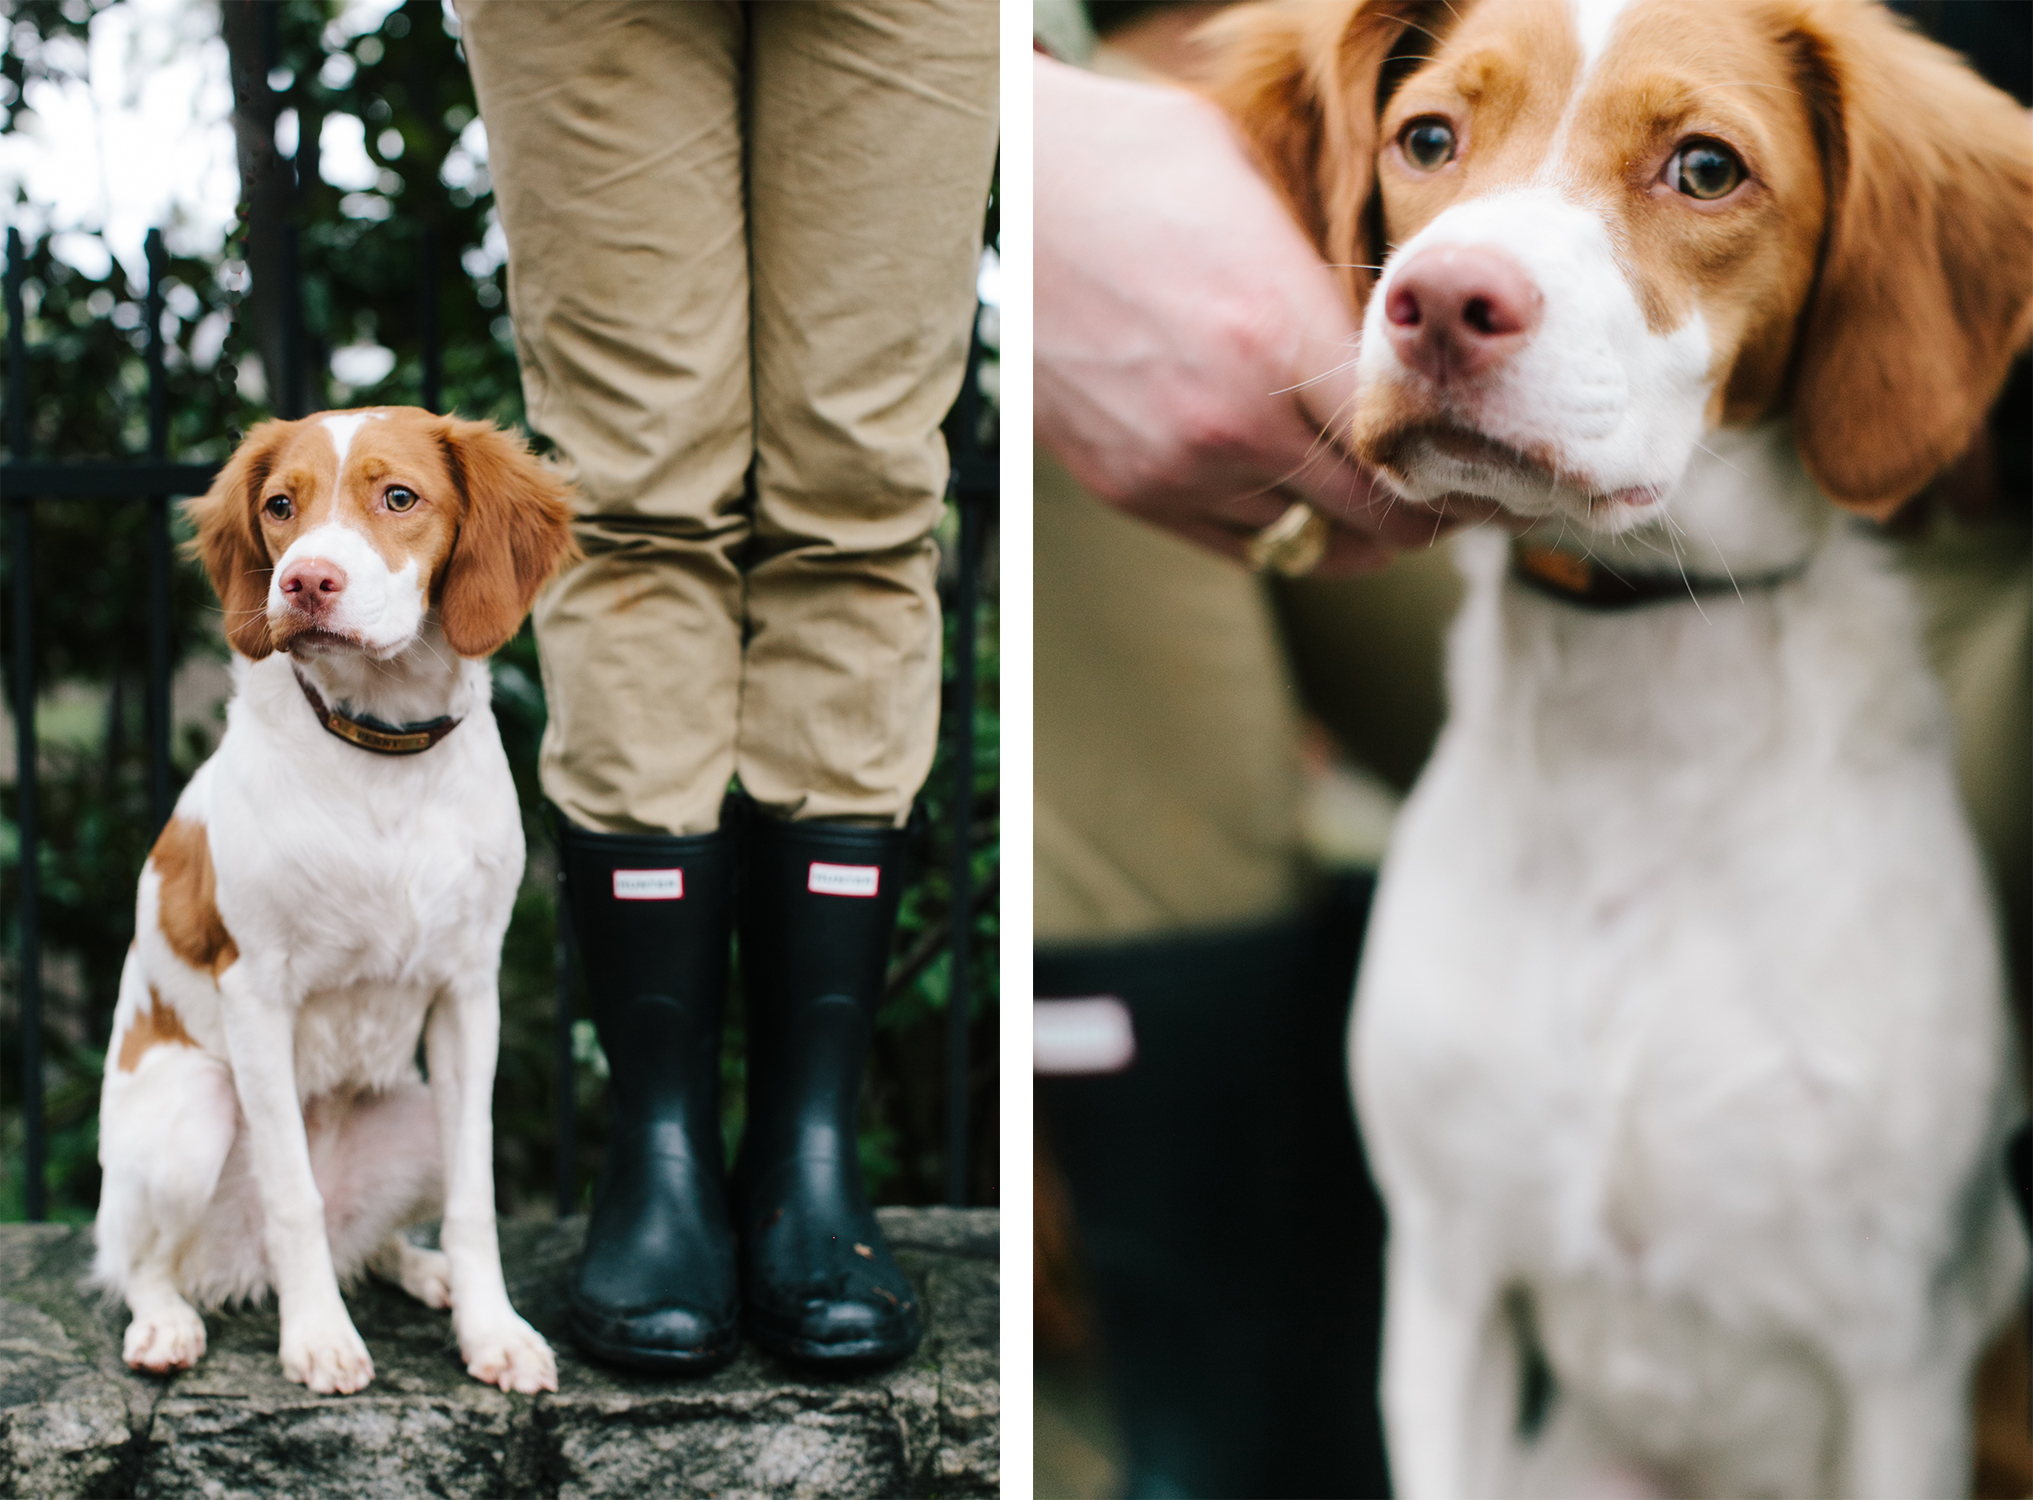 Kathryn-McCrary-Photography-Penny-Puppy-Rain-Hunter-Boots-4.jpg